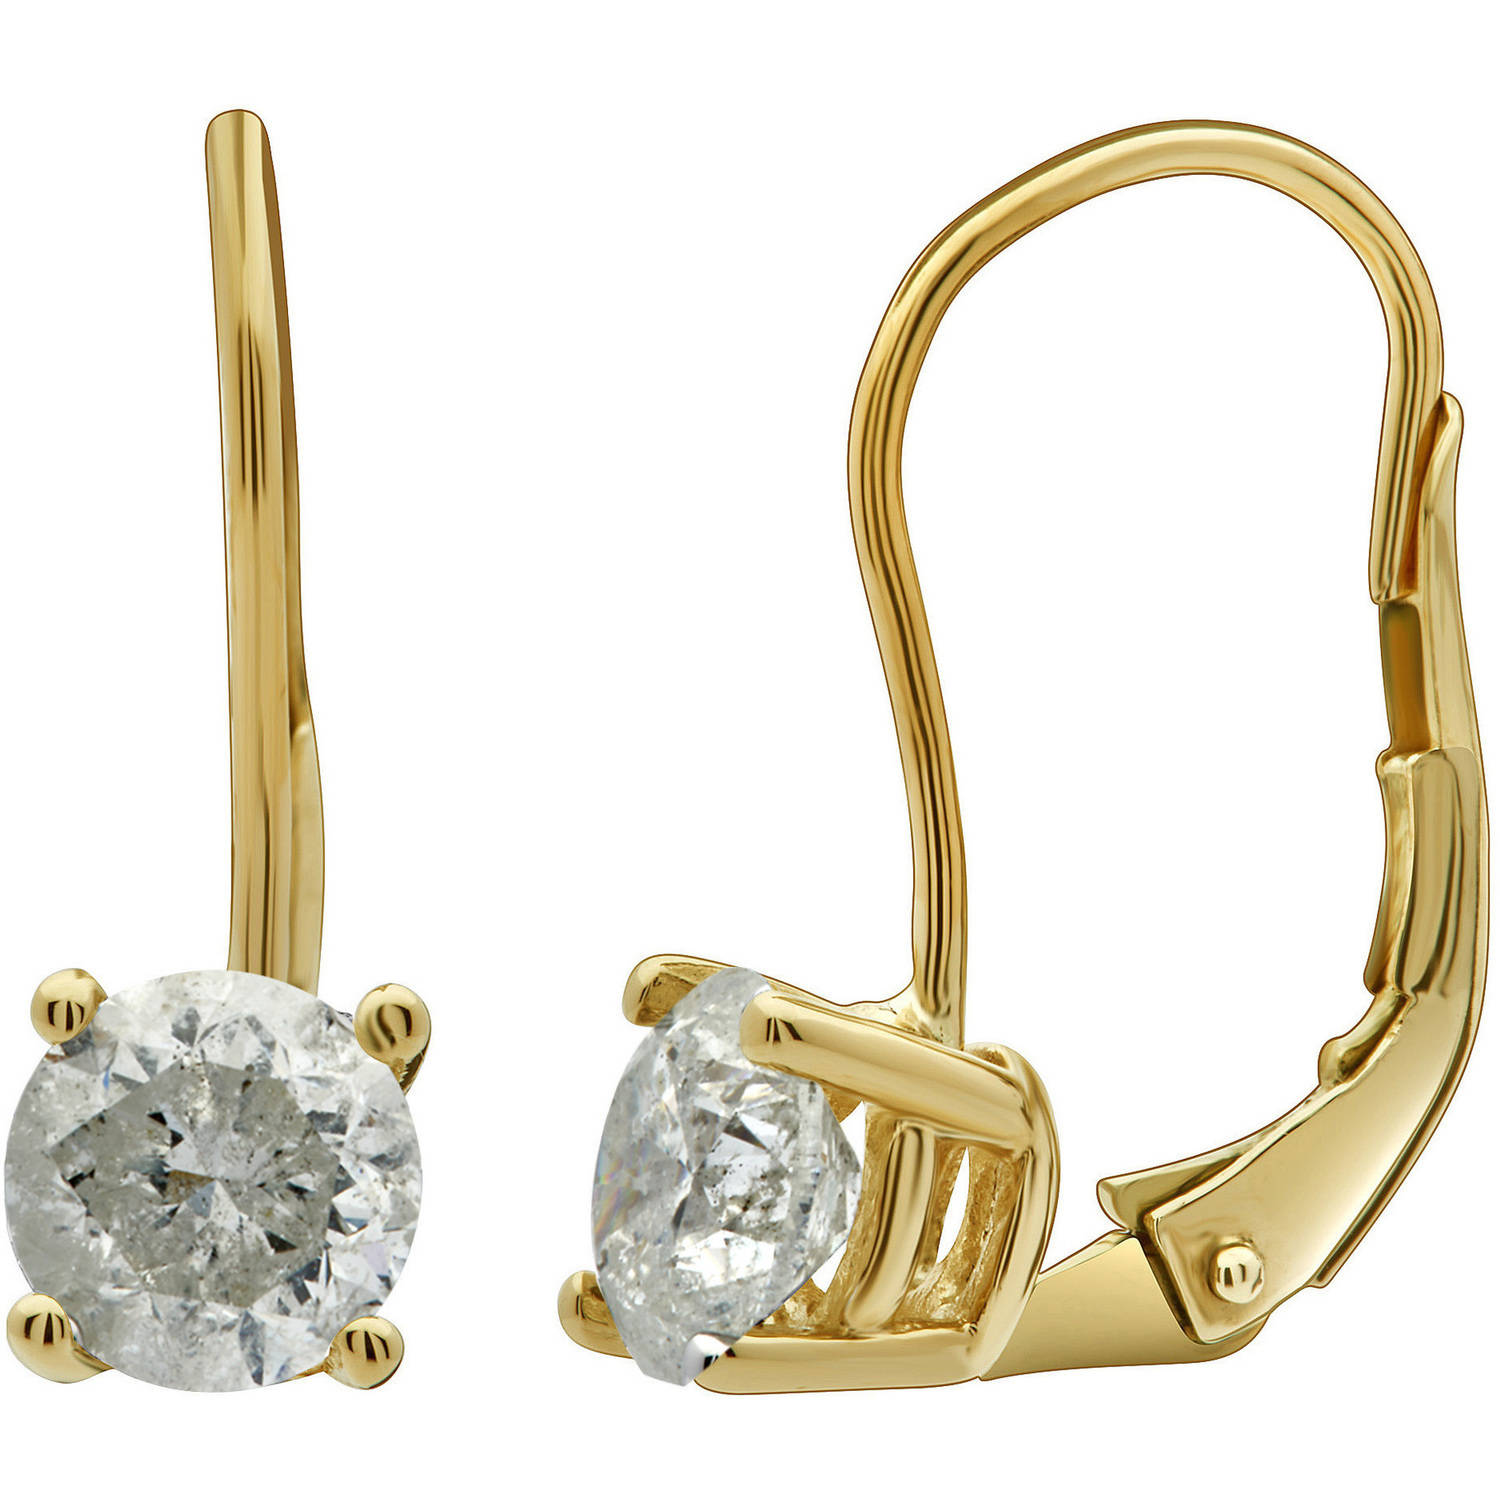 1.00 Carat T.W. Round Diamond 14kt Yellow Gold Leverback Stud Earrings with Gift Box, IGL Certified